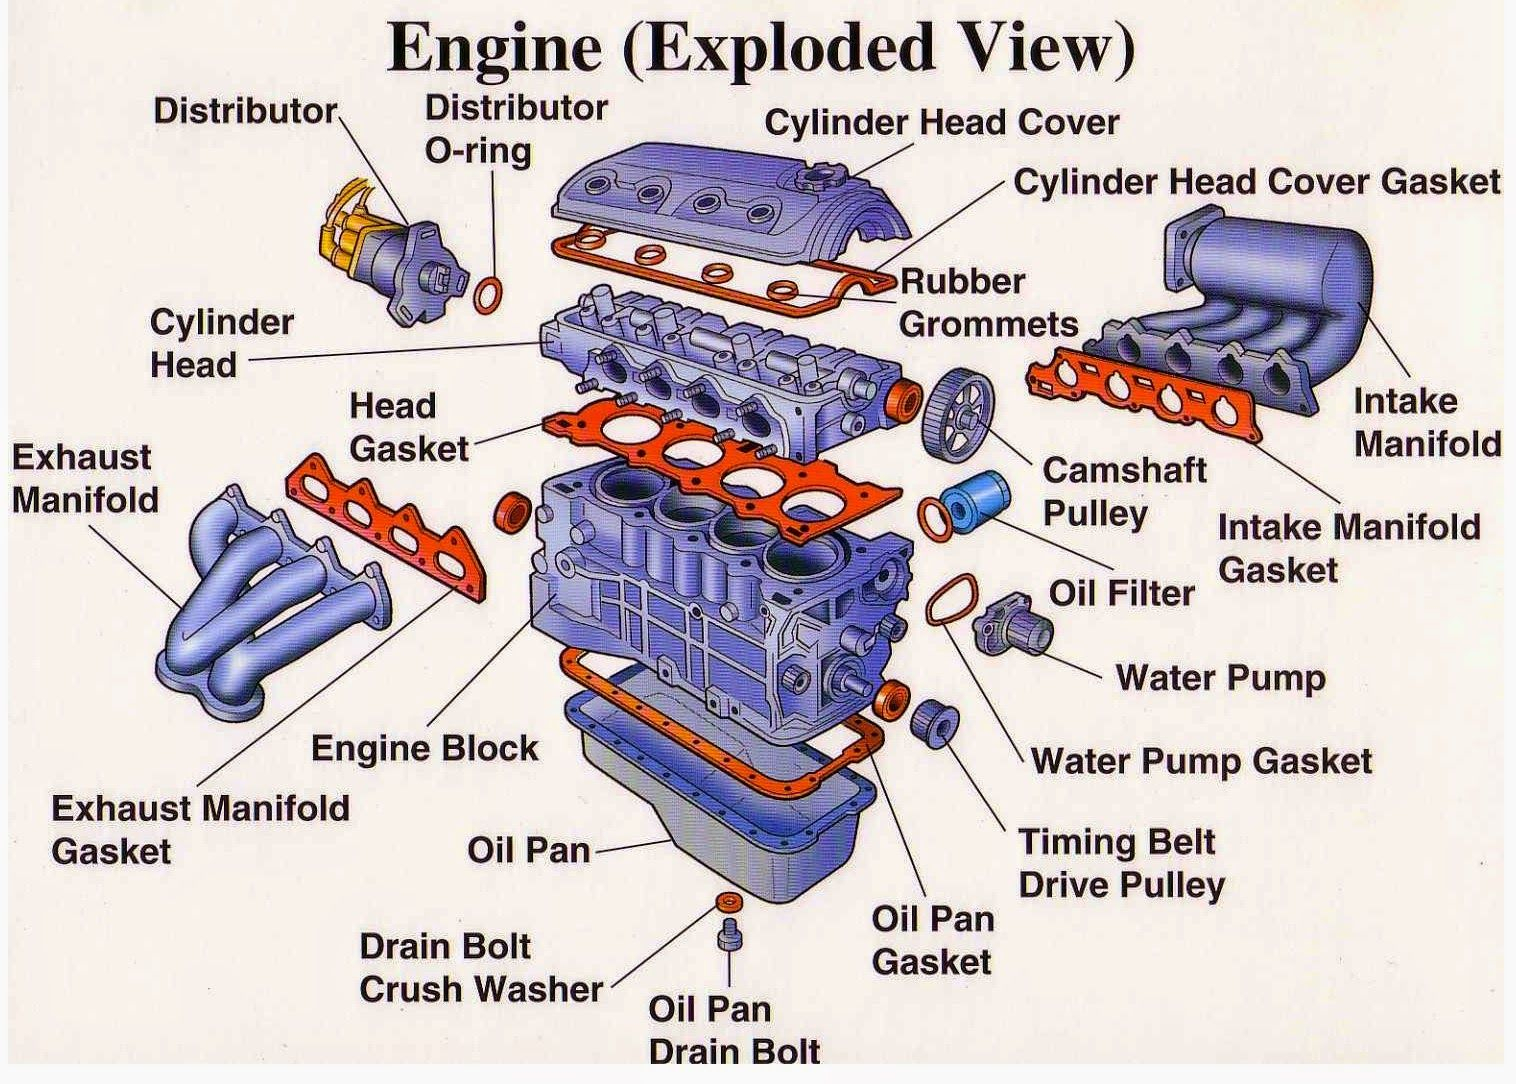 Engine Components Diagram Engine Parts (Exploded View) ~ Electrical  Engineering World | Auto